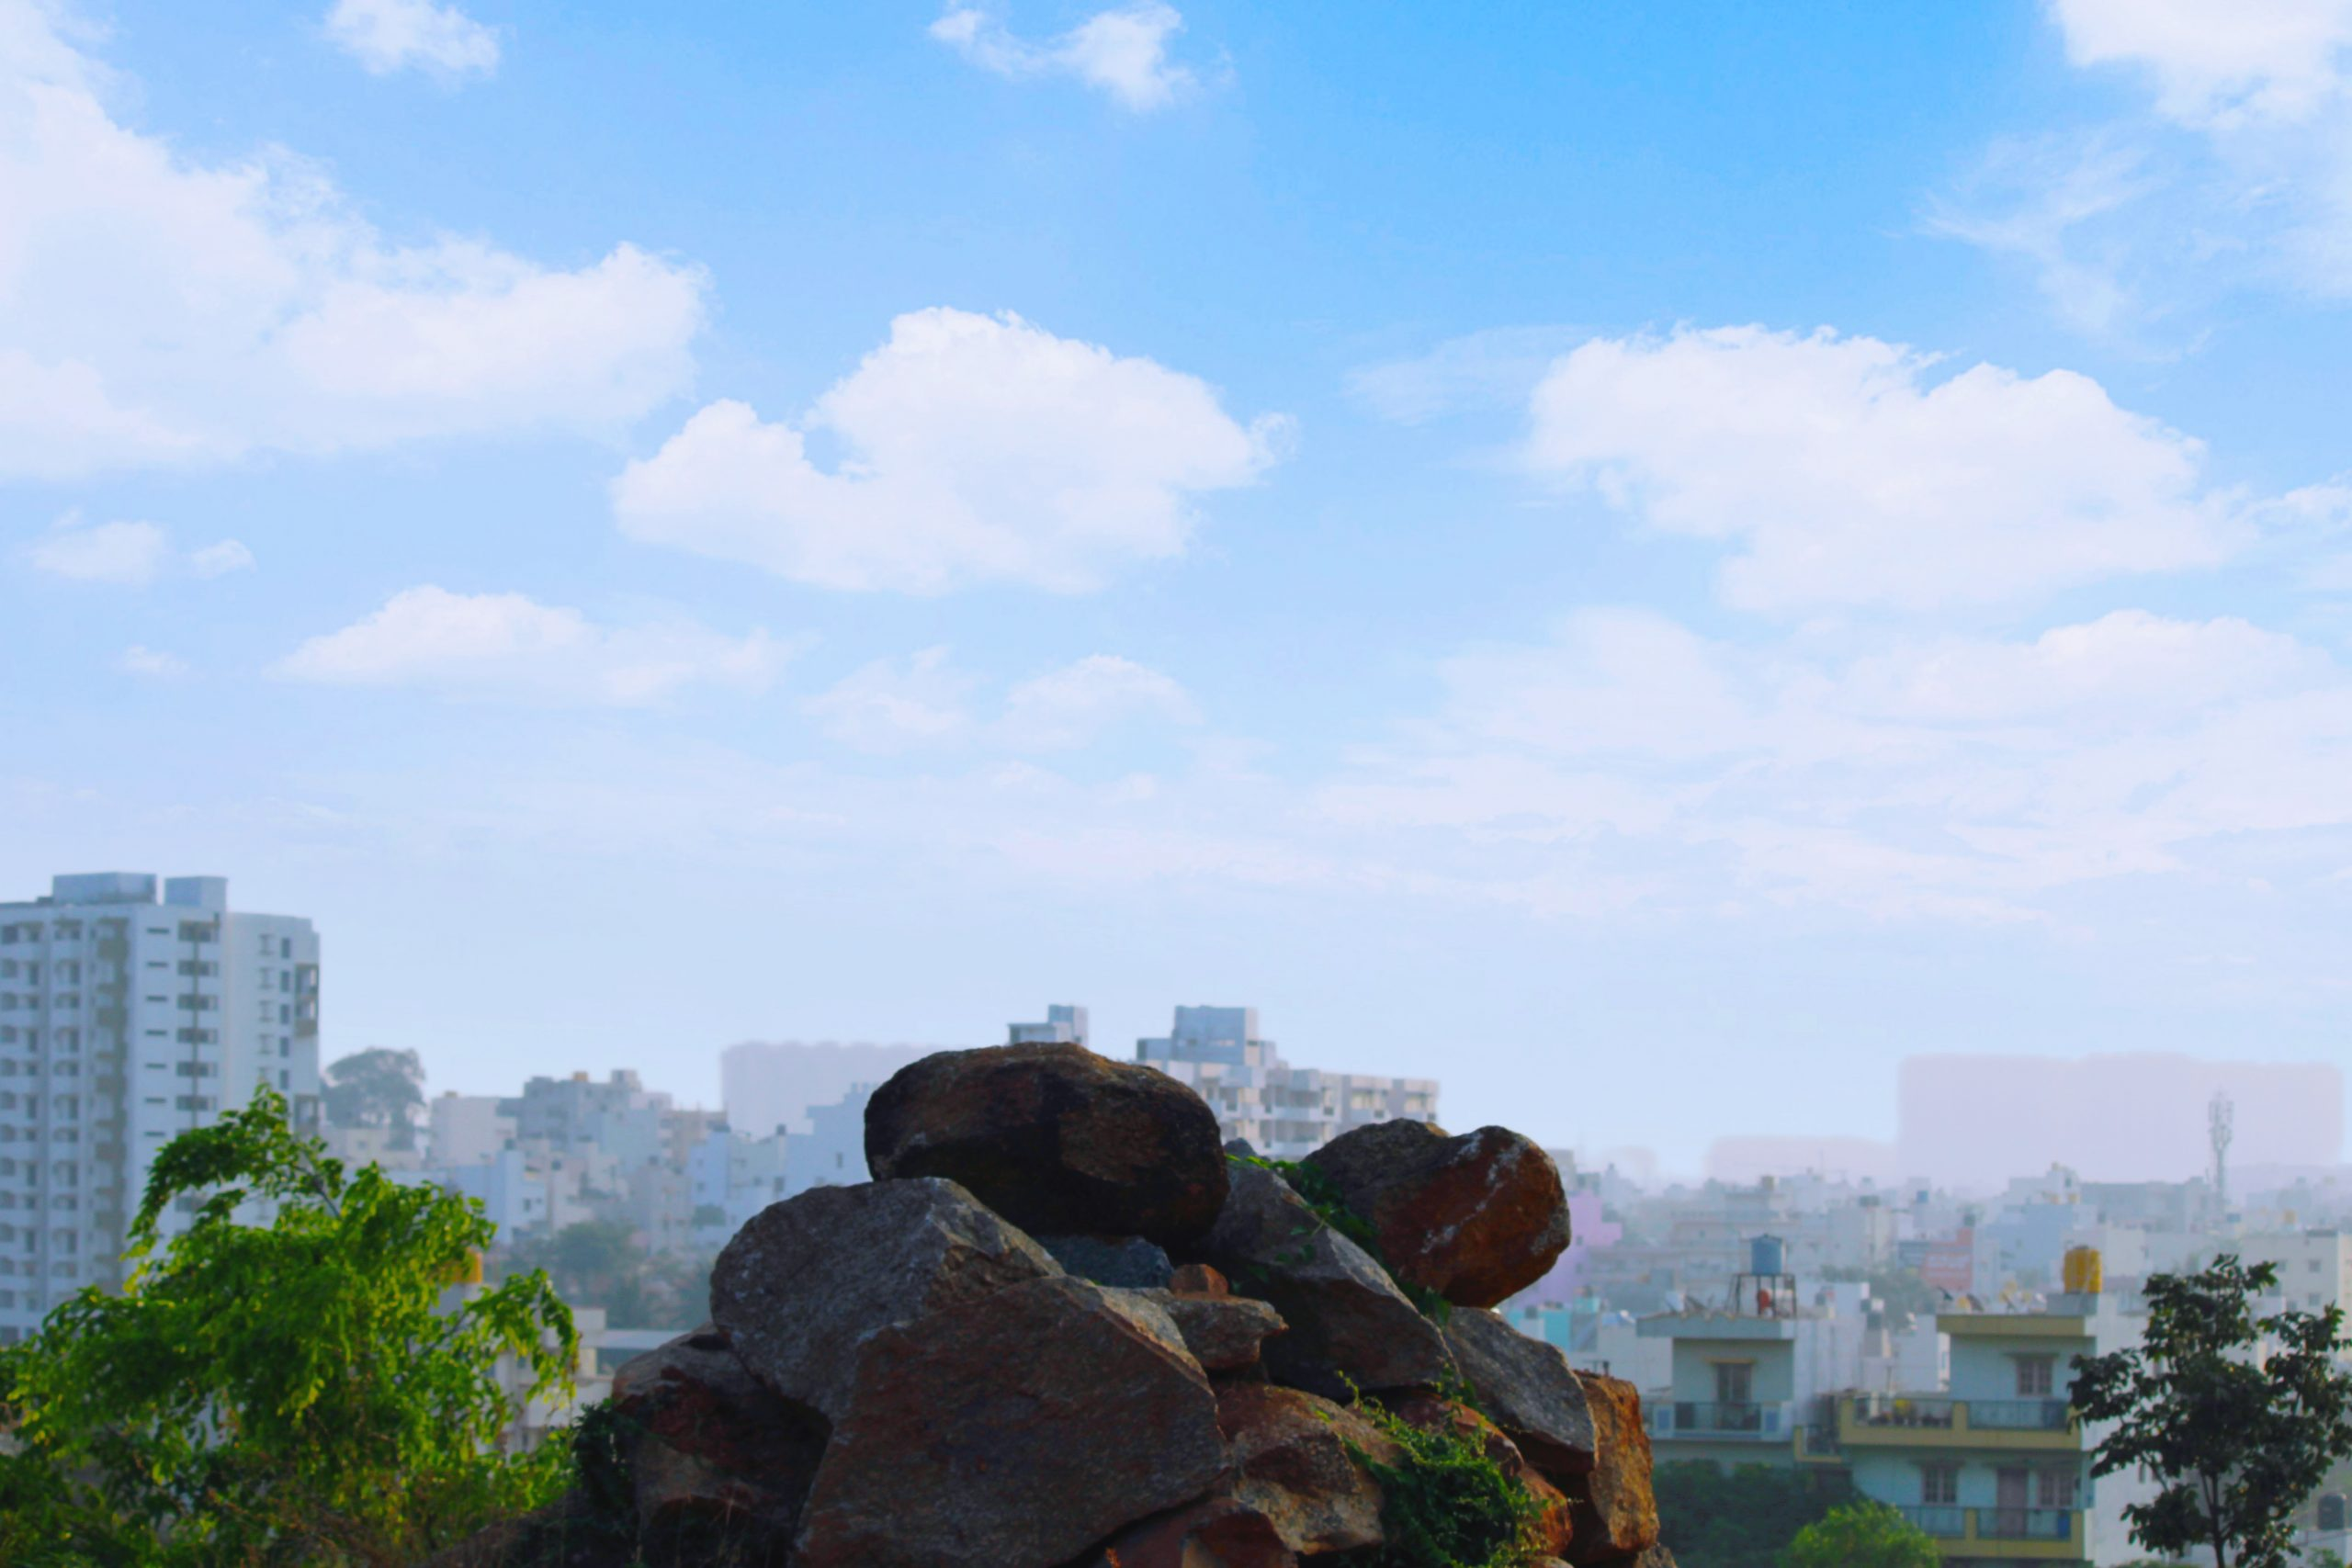 Rocks in front of the City